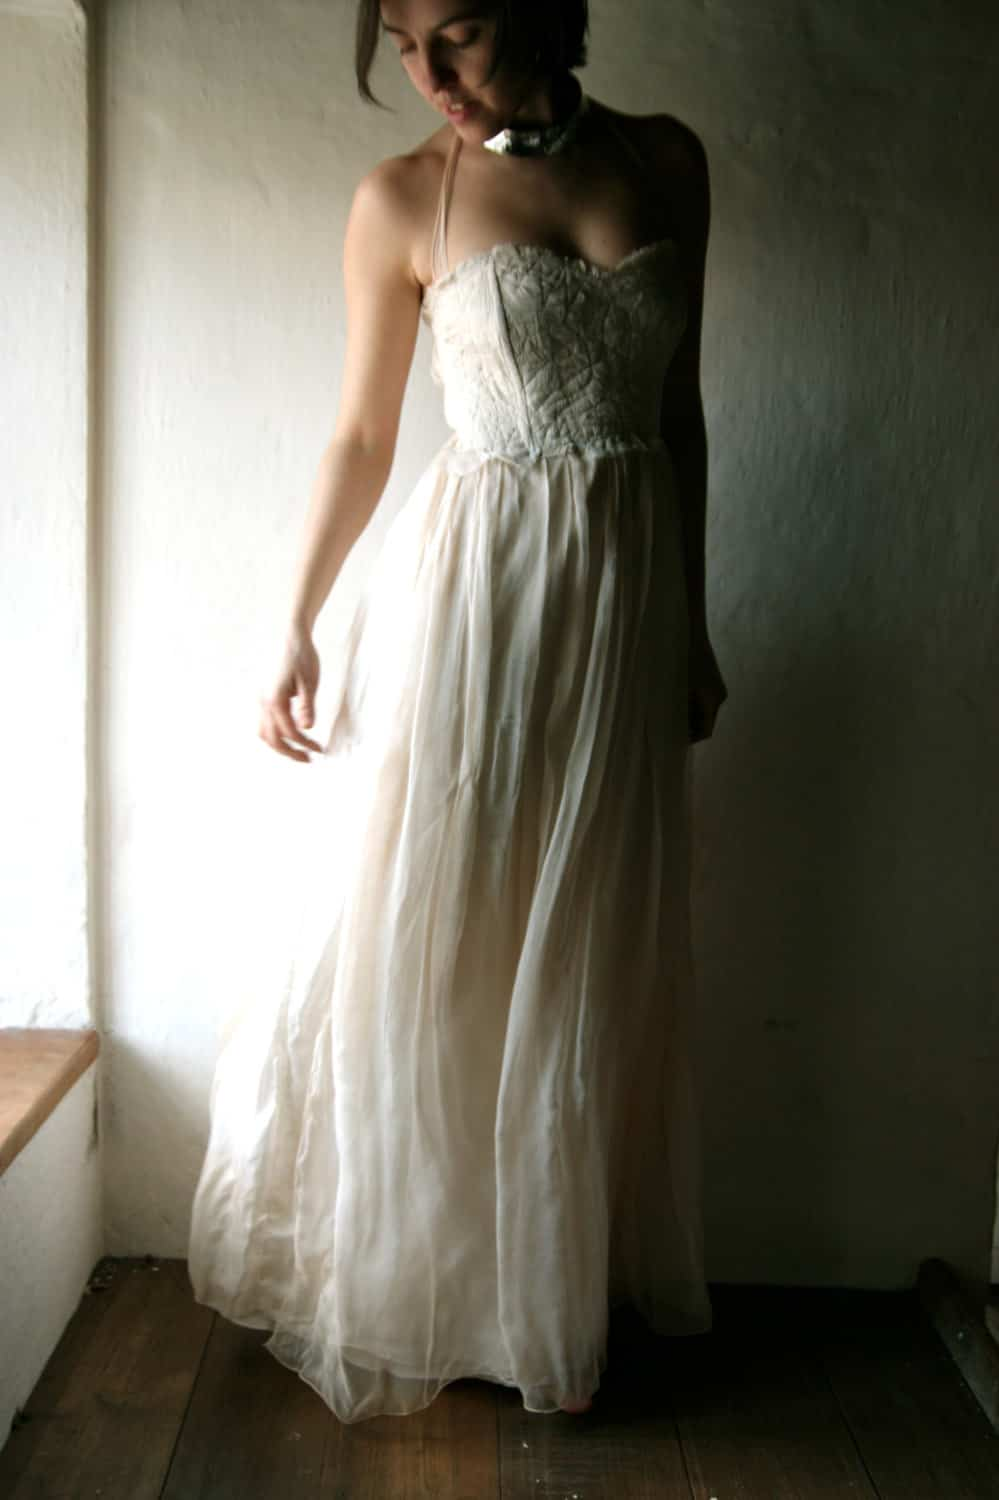 Rustic boho wedding dress for outdoor beach weddings ...